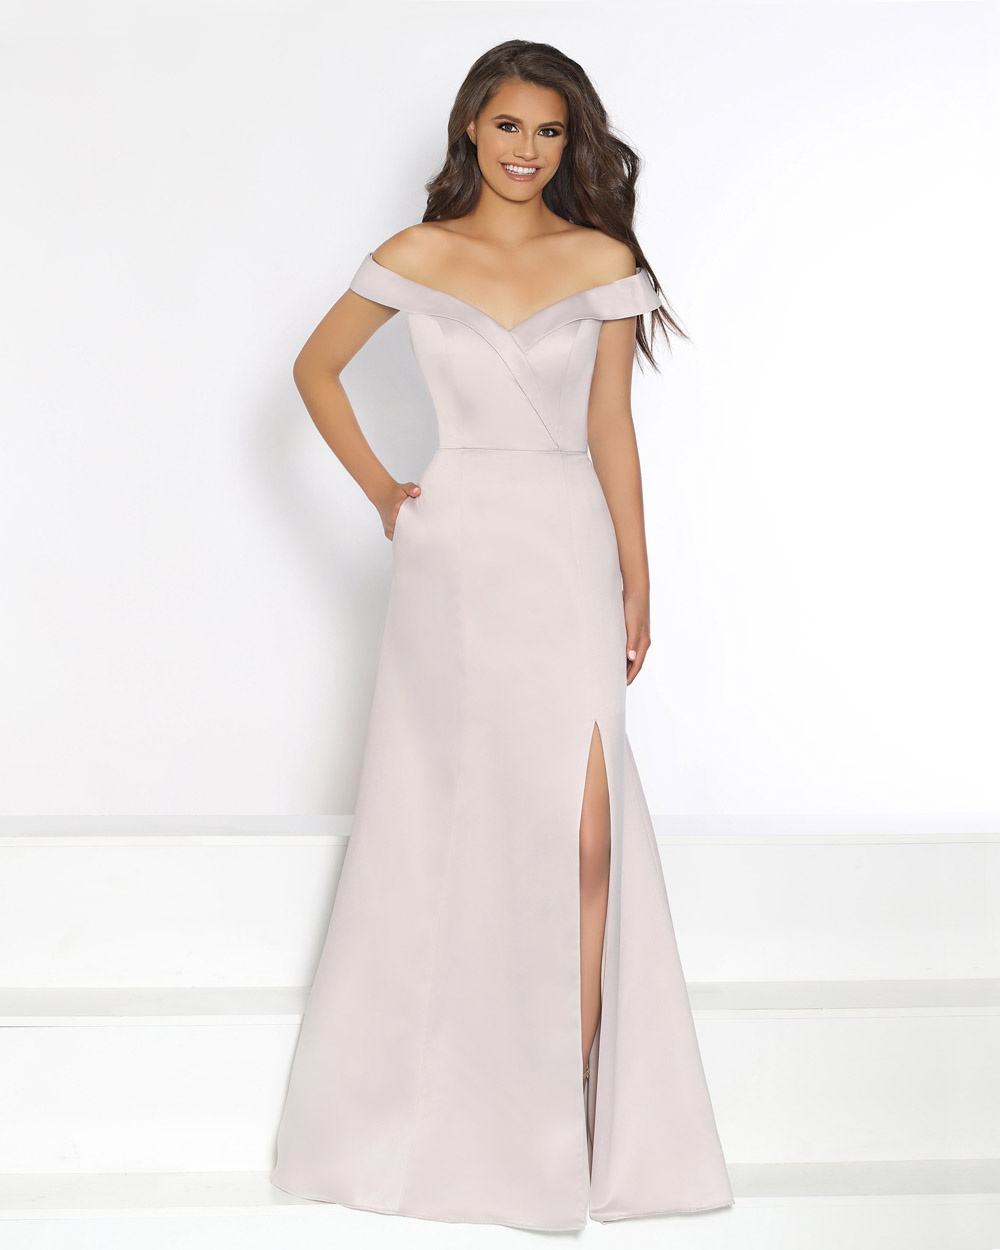 images?q=tbn:ANd9GcQh_l3eQ5xwiPy07kGEXjmjgmBKBRB7H2mRxCGhv1tFWg5c_mWT Awesome Seattle Wedding Dress Alterations @bookmarkpages.info